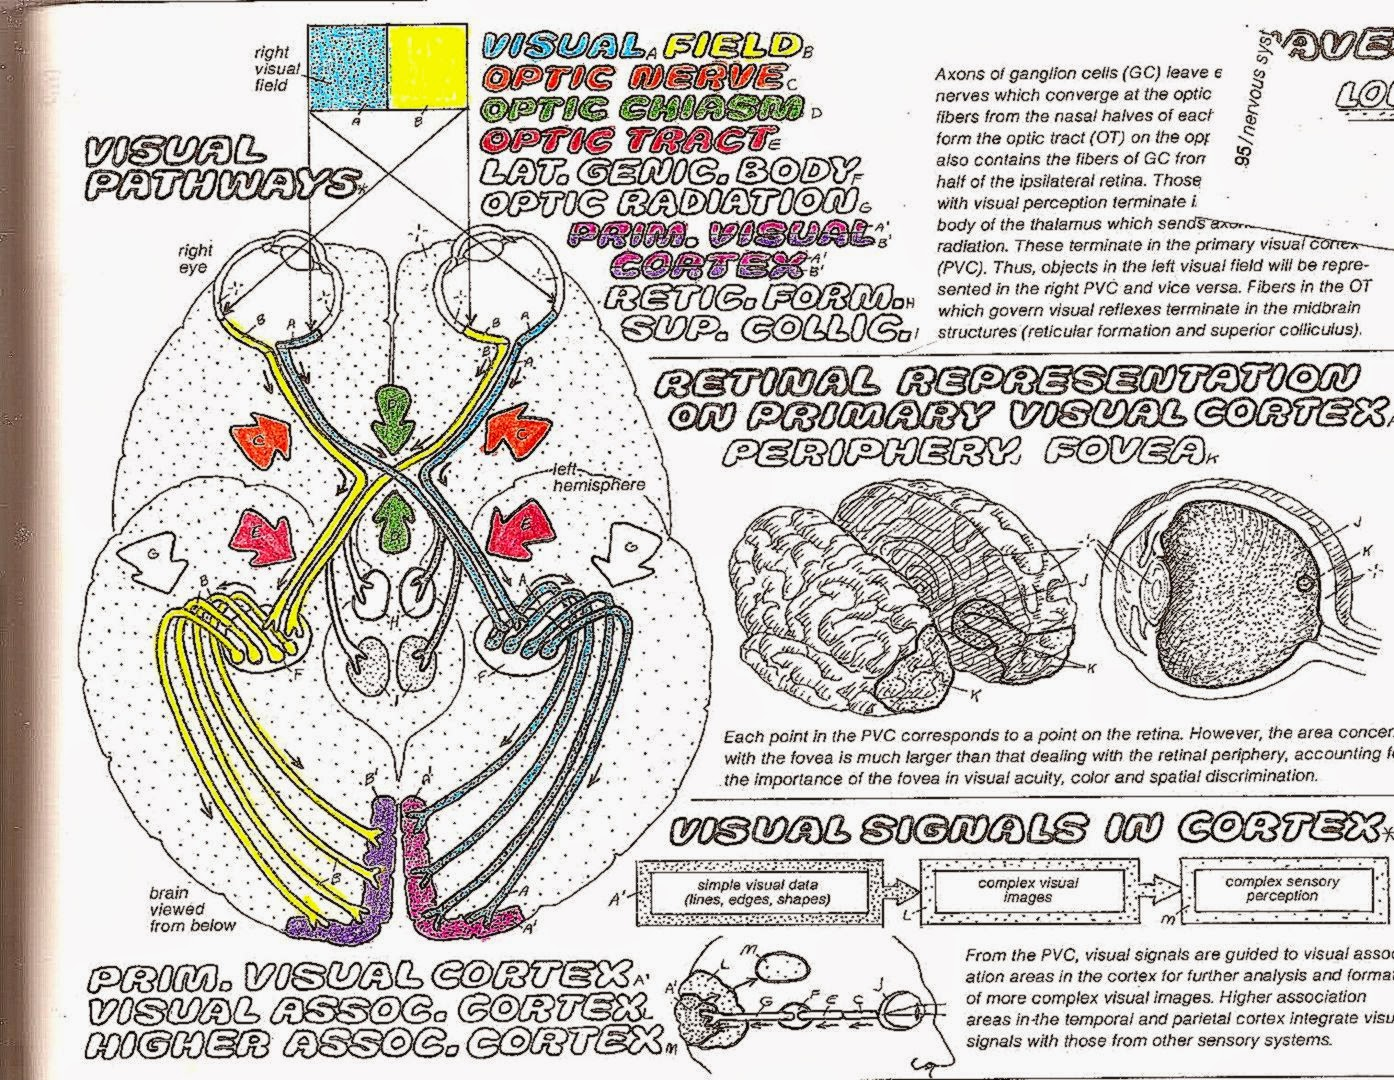 Anatomy coloring book for health professions - Anatomy Coloring Book For Health Professions Anatomy Amp Physiology